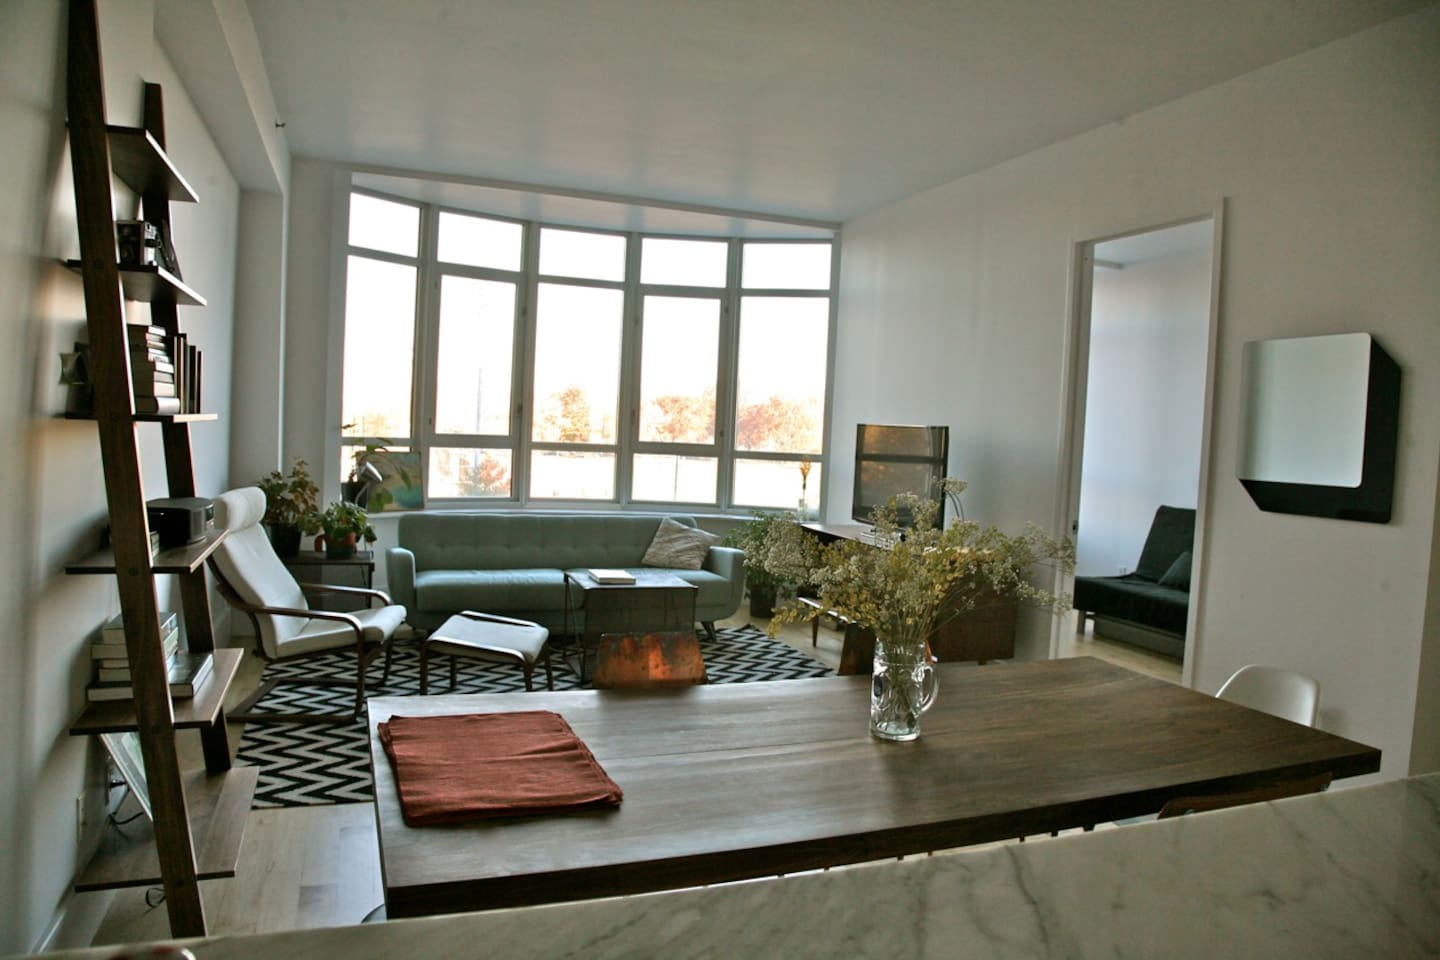 bright, airy living room